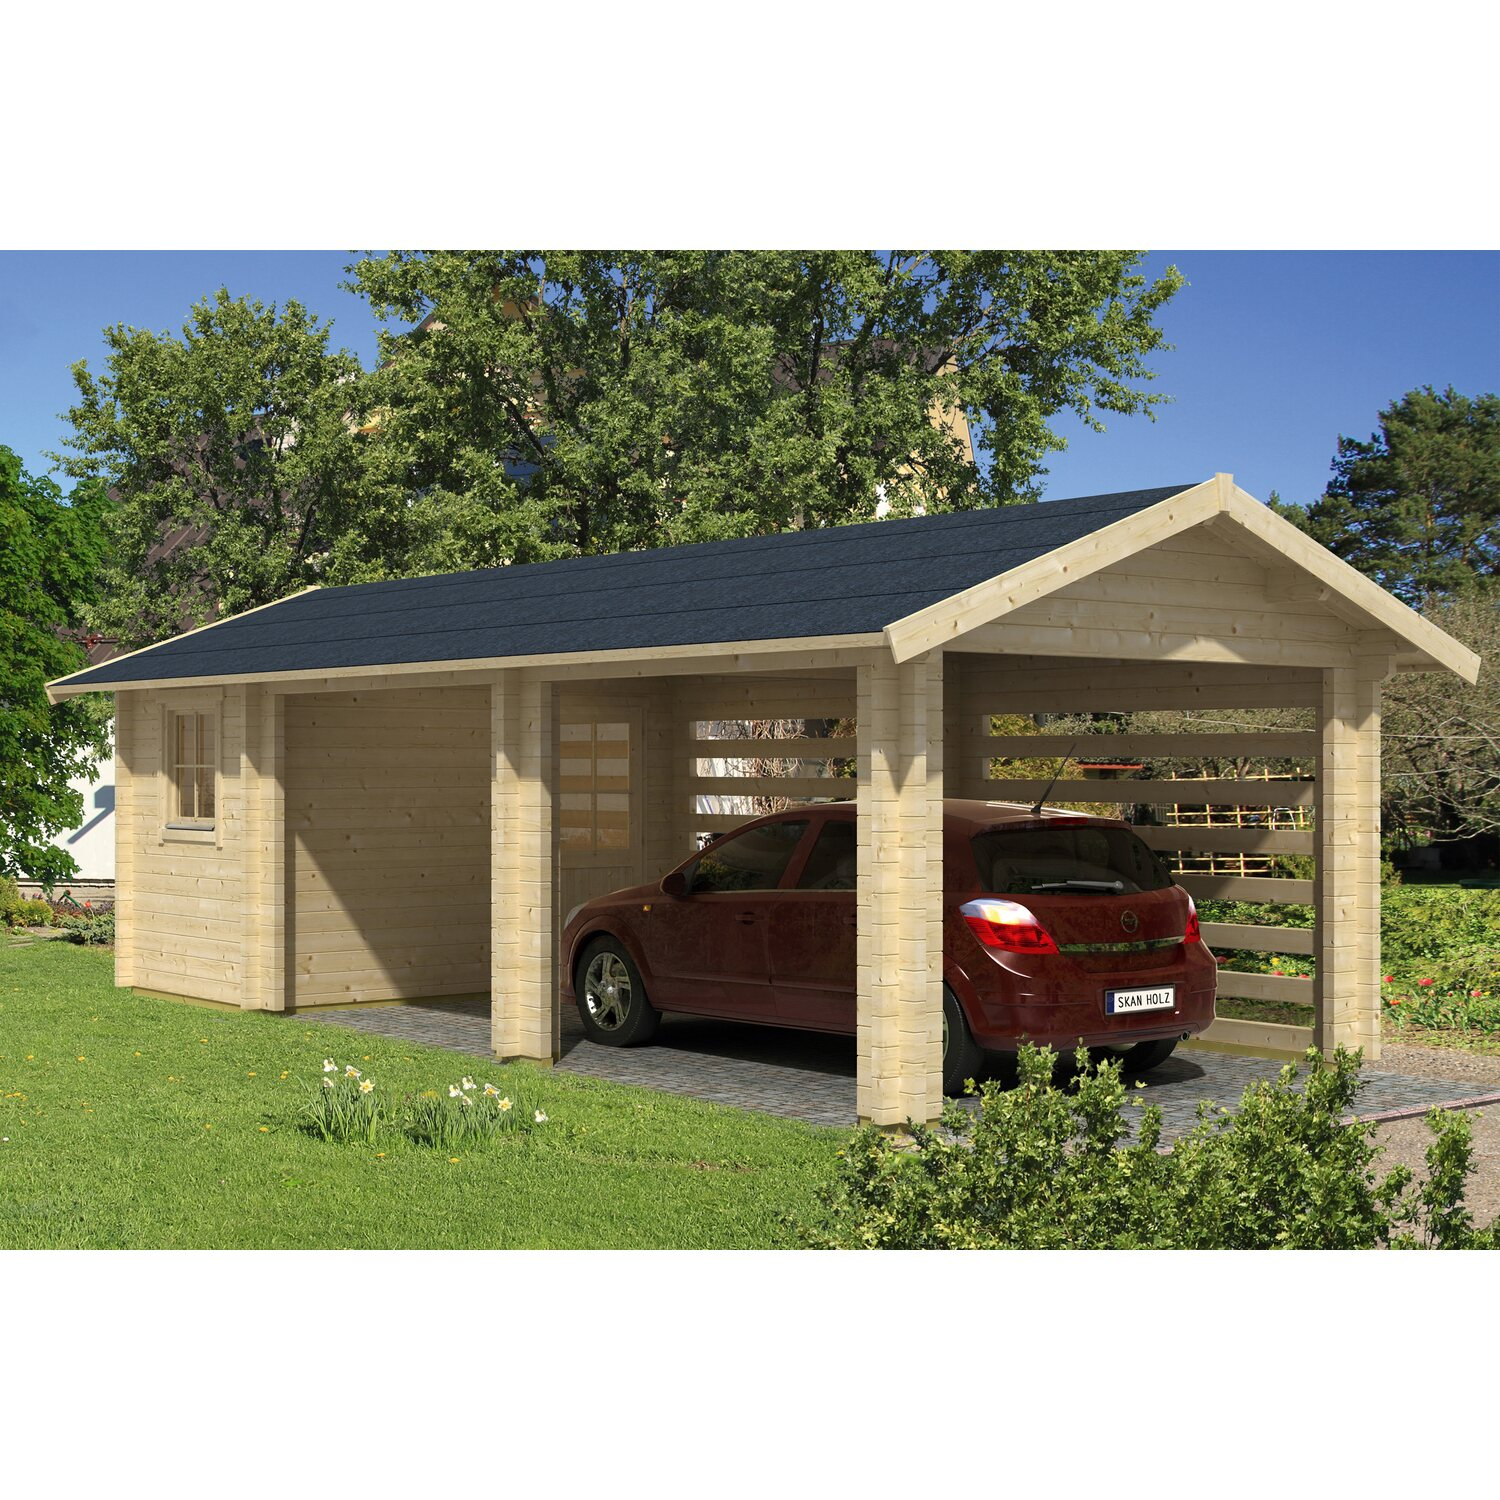 skan holz blockbohlen carport stockholm 340 cm x 800 cm natur kaufen bei obi. Black Bedroom Furniture Sets. Home Design Ideas